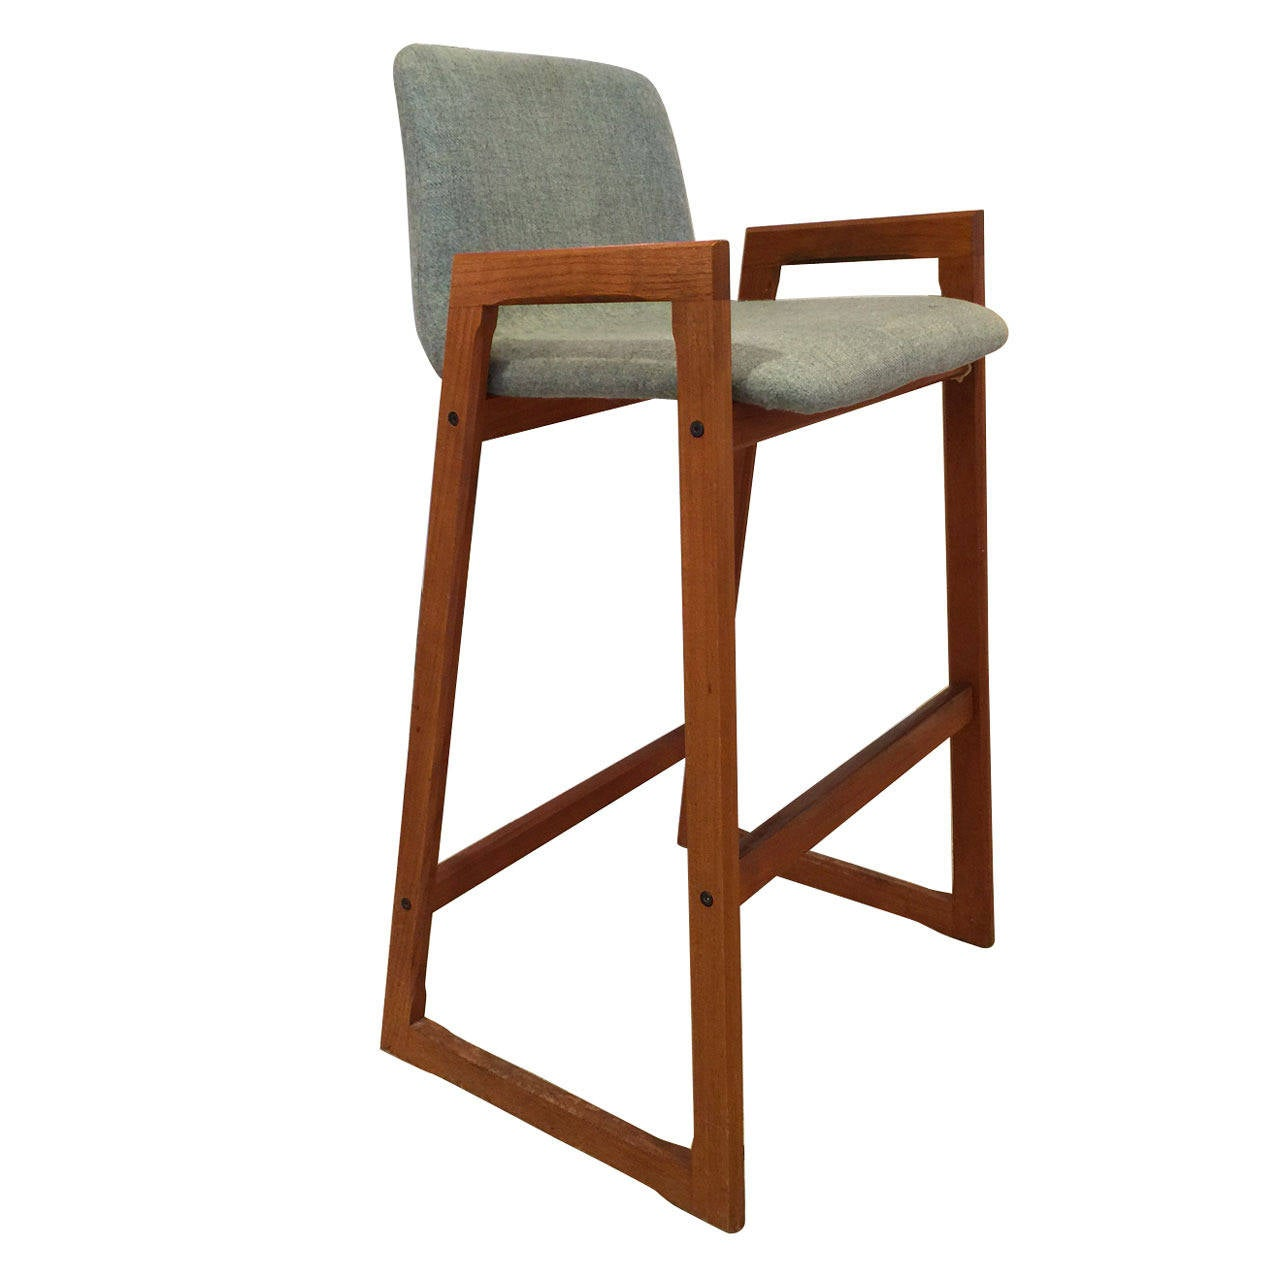 Image1 for Bar stools with arms